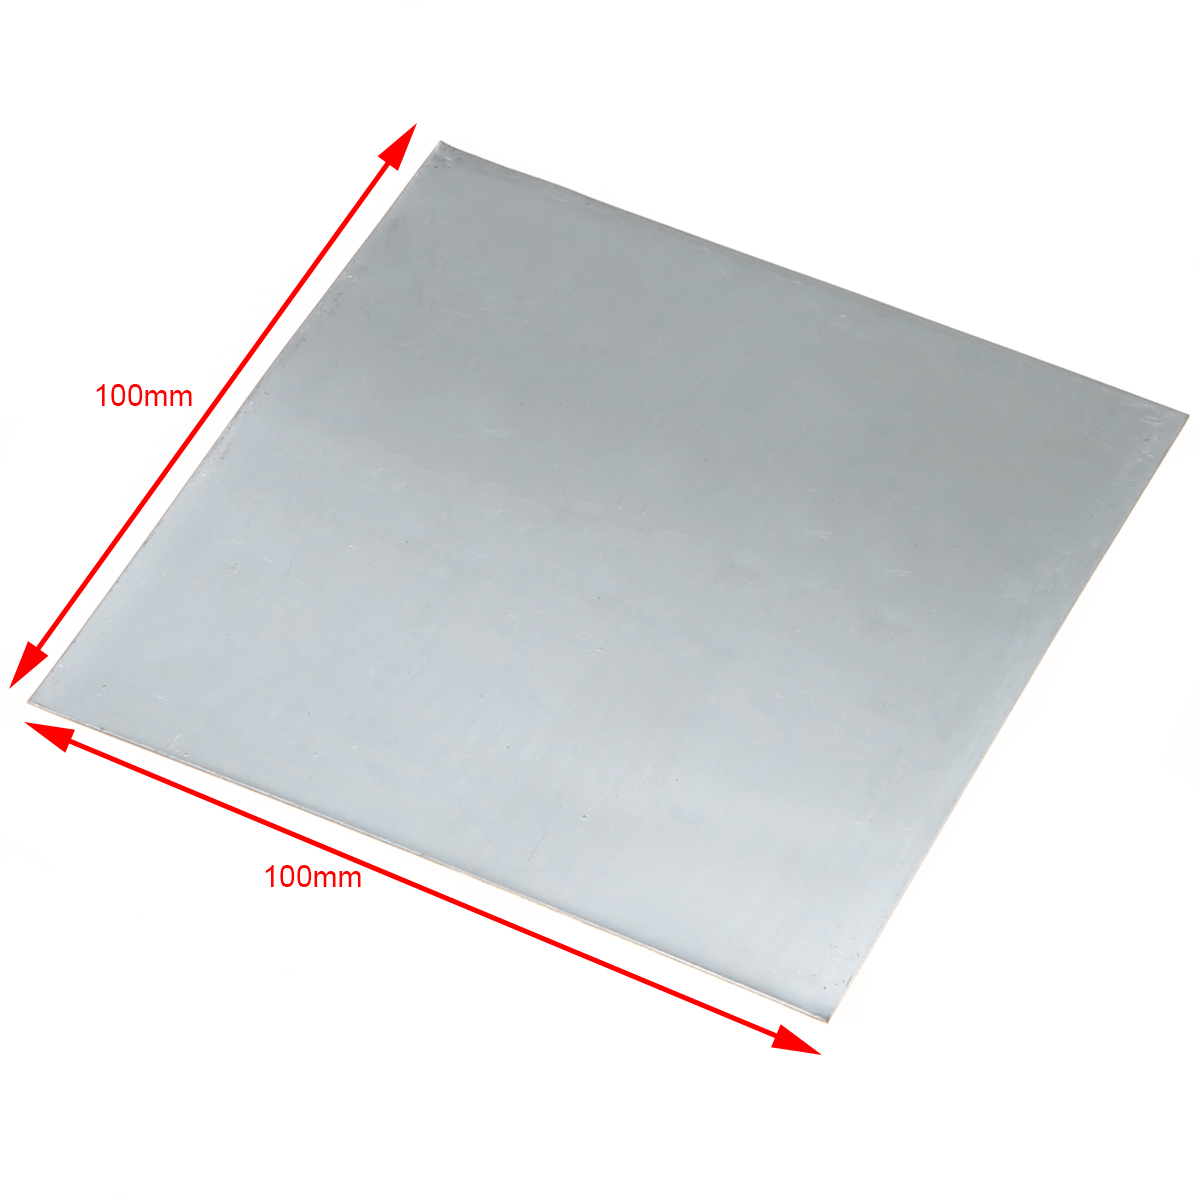 1Pcs High Purity Zinc Zn Sheet Plate 100*100*0.2mm Bluish-white Metal Color For Science Lab Accessories For Industry Tools